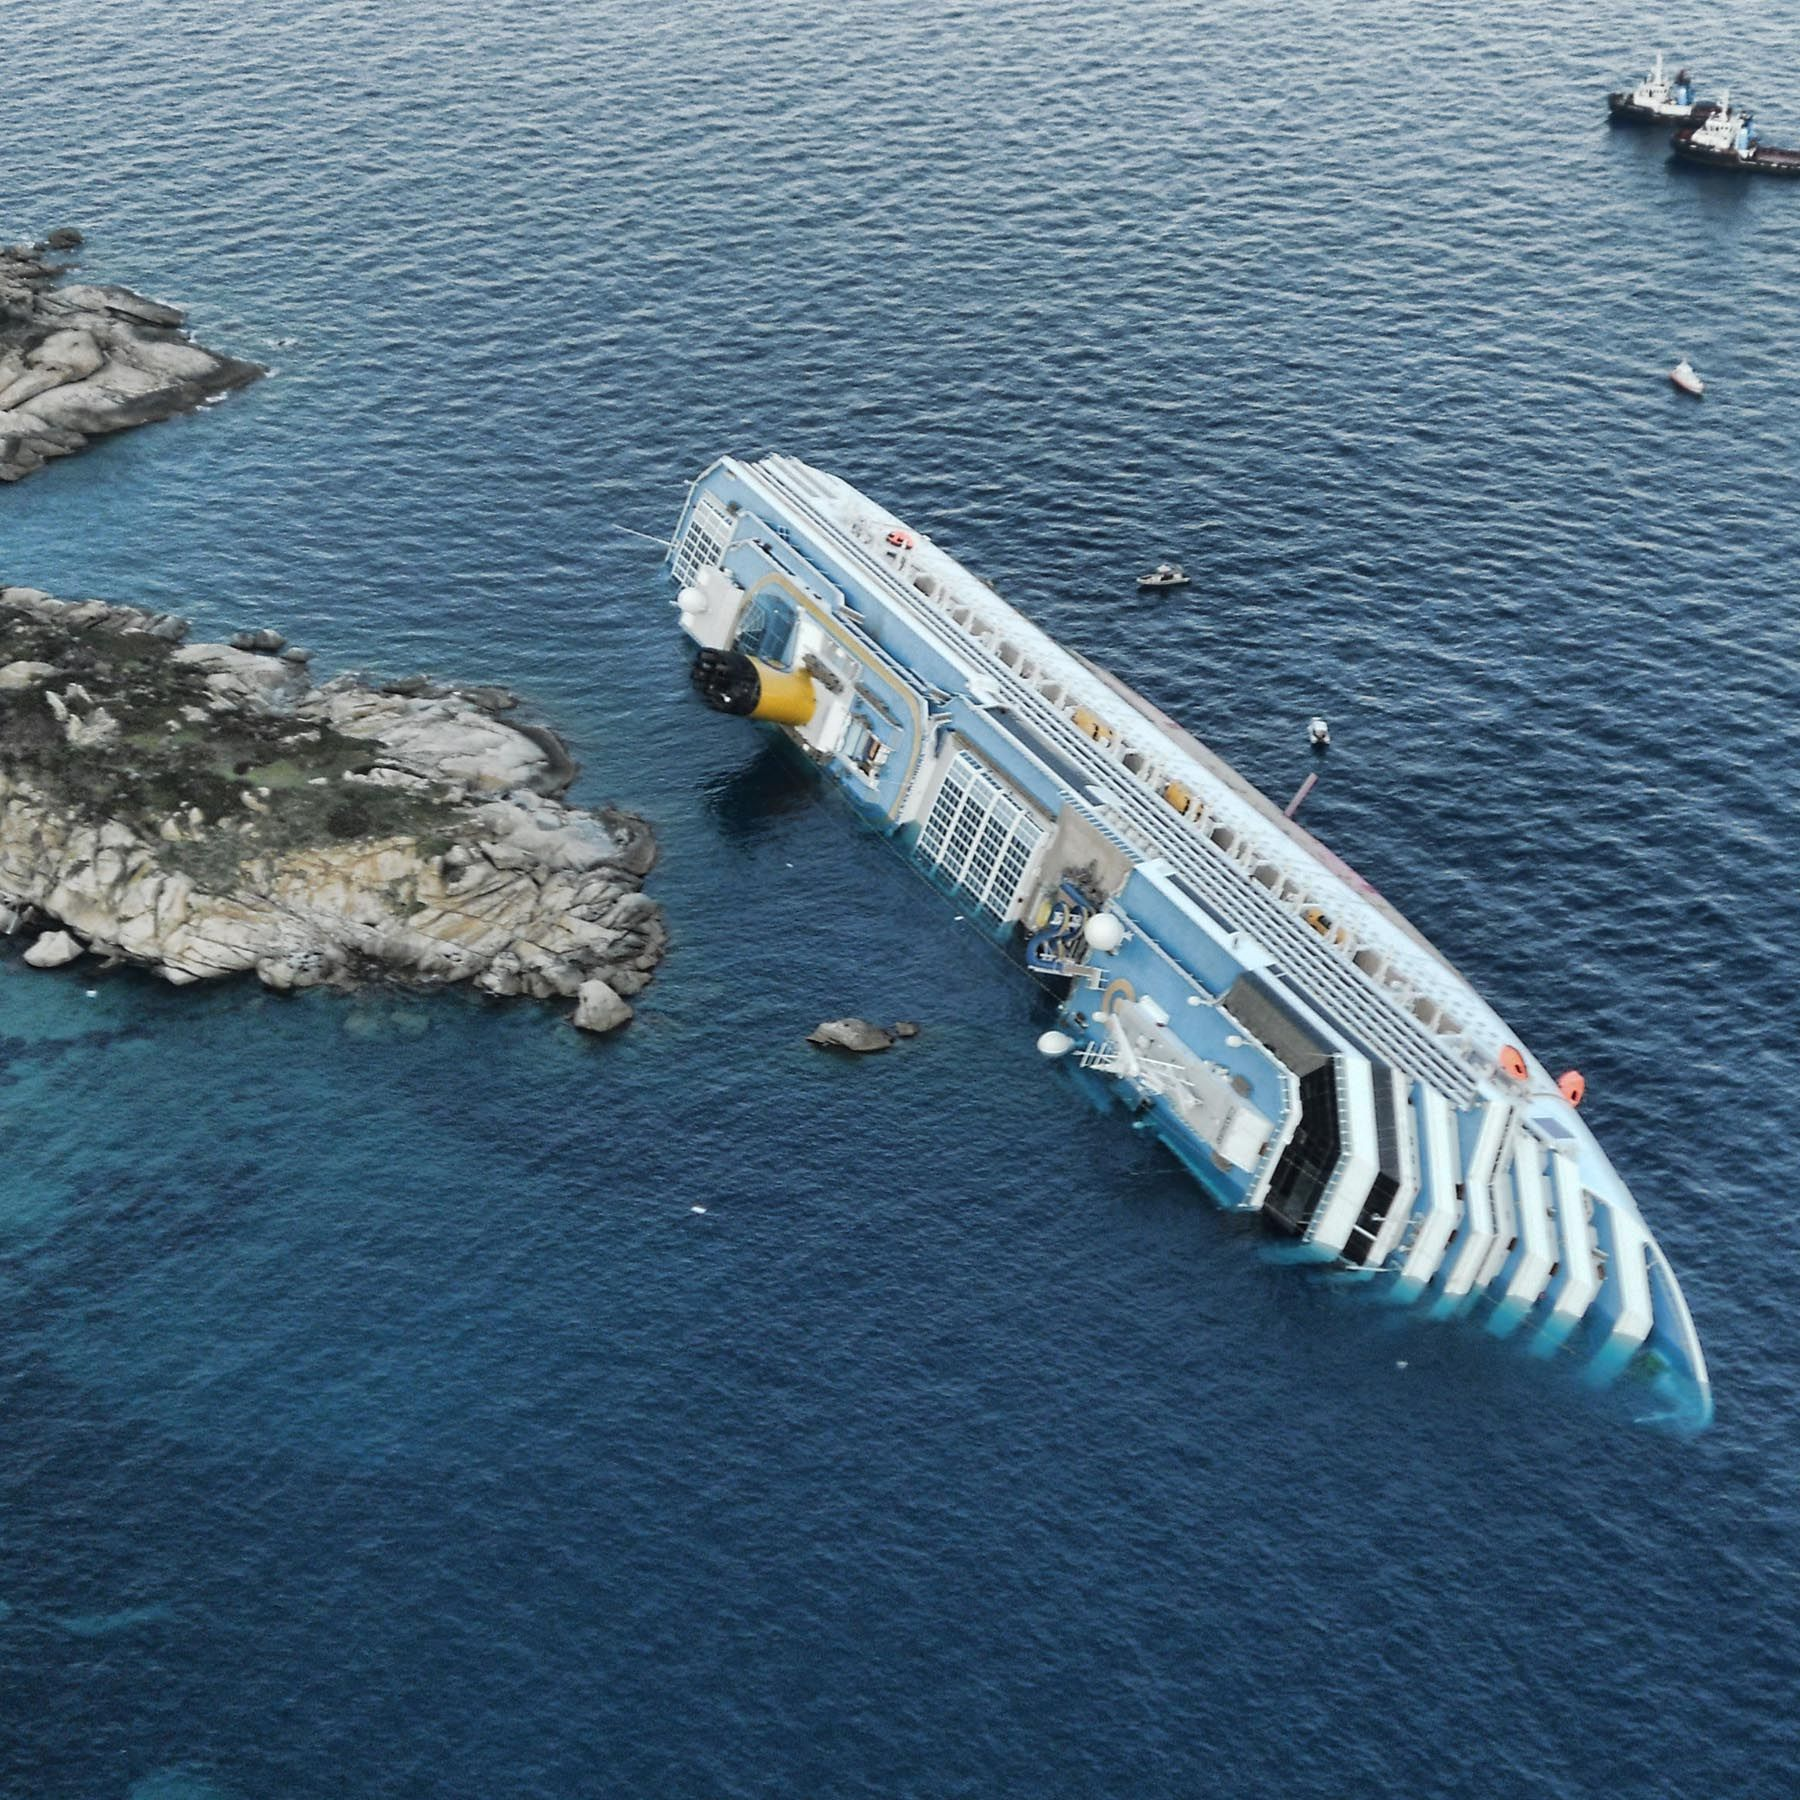 Man Pushes Wife To Save Himself From A Sinking Cruise Ship